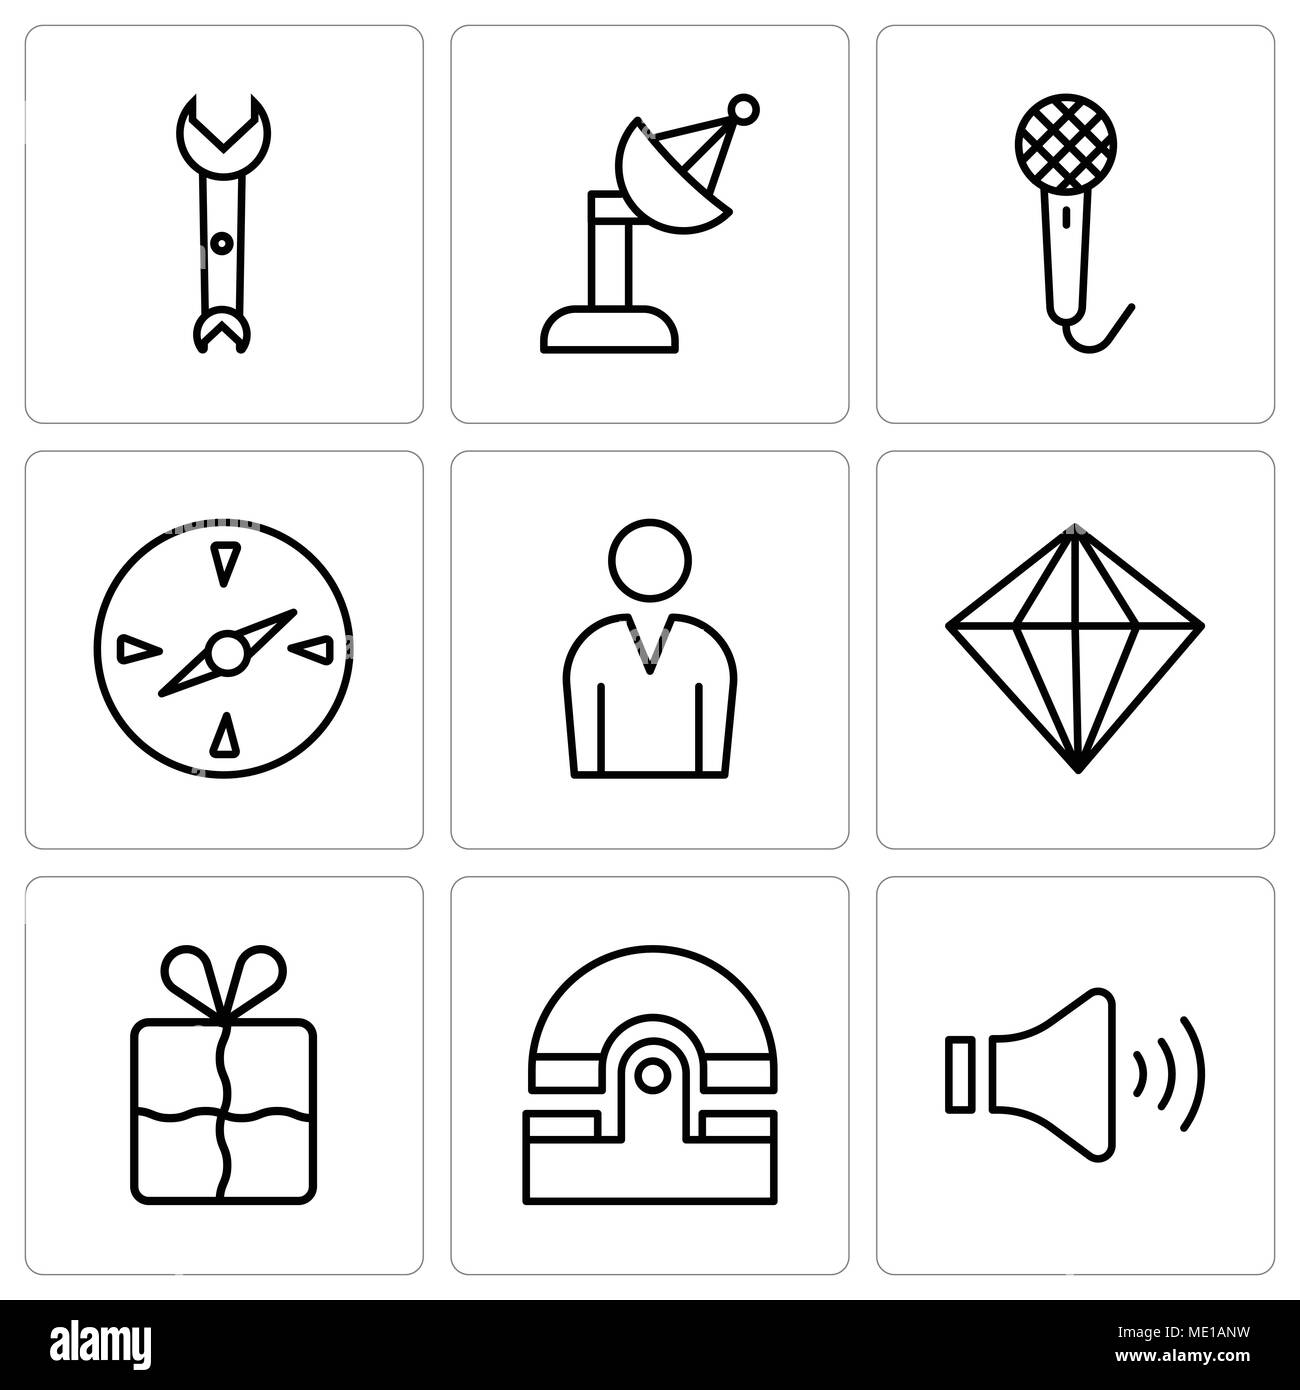 Set Of 9 simple editable icons such as Mute speakers, Old phone, Bookmark, Diamond, Male avatar, Compass, Voice recorder, Satellite dish, Wrench, can  - Stock Image